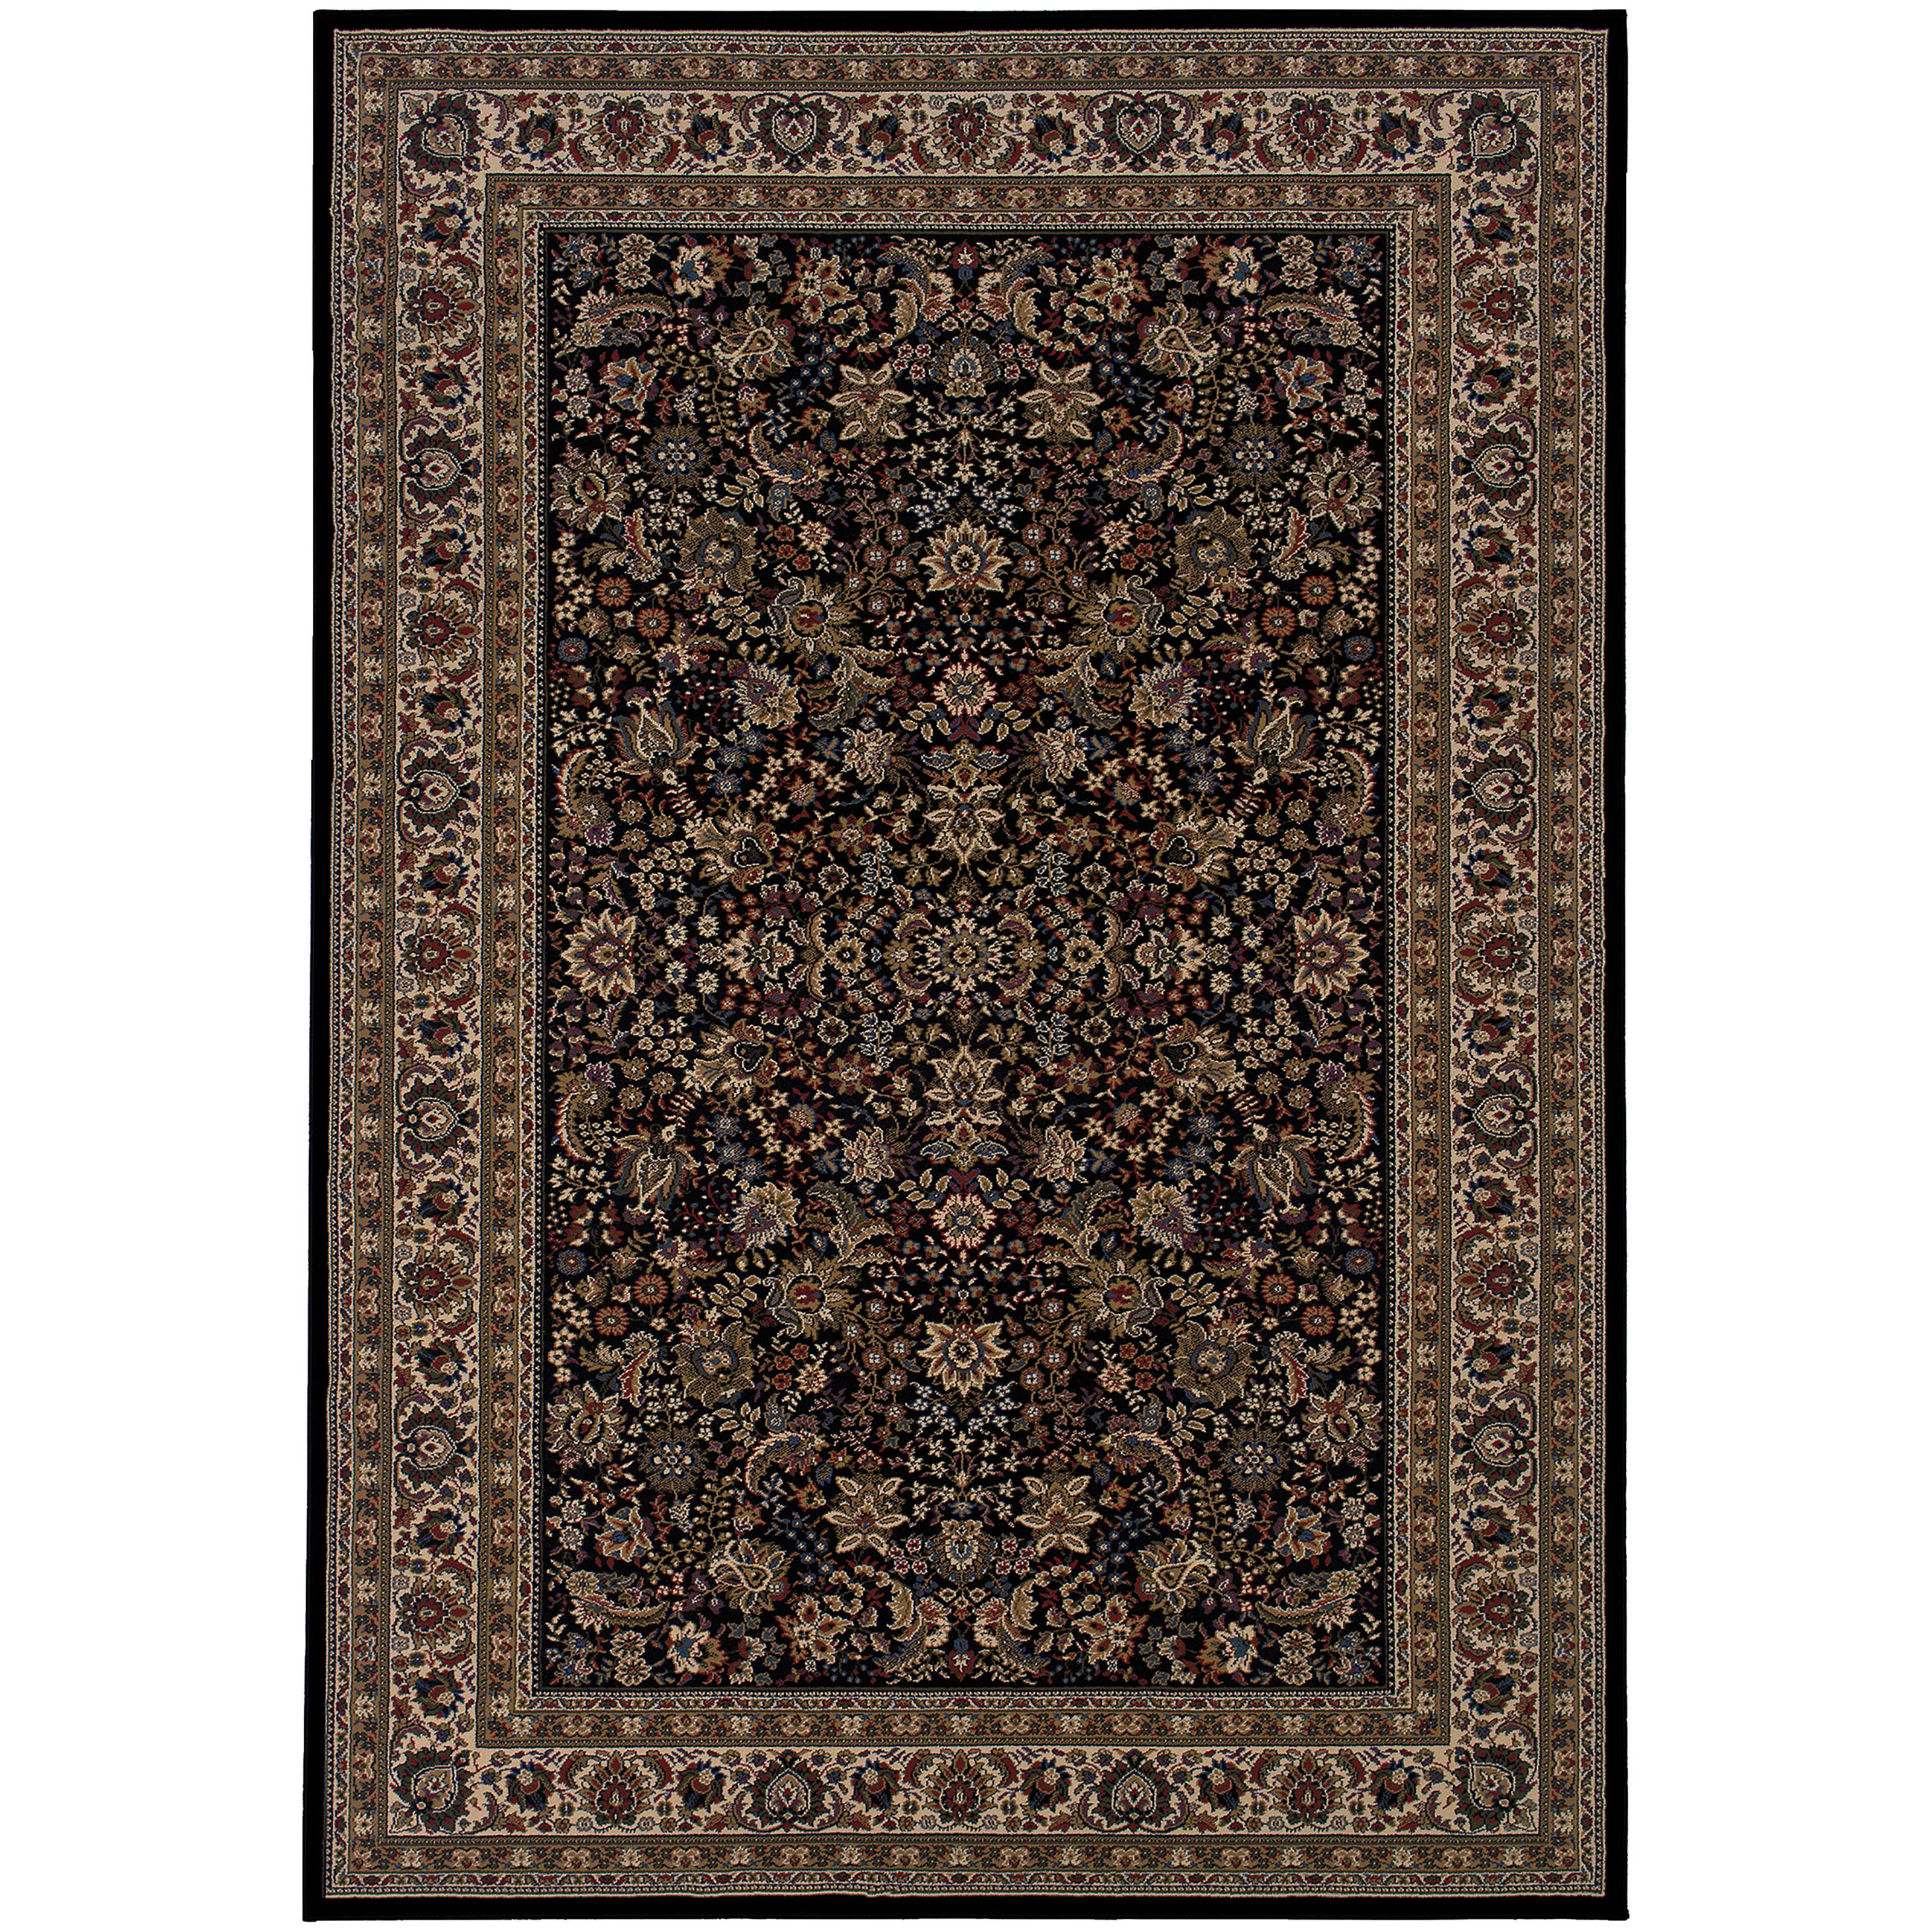 Oriental Weavers Ariana 12' X 15' Rug - Item Number: A213K8360450ST